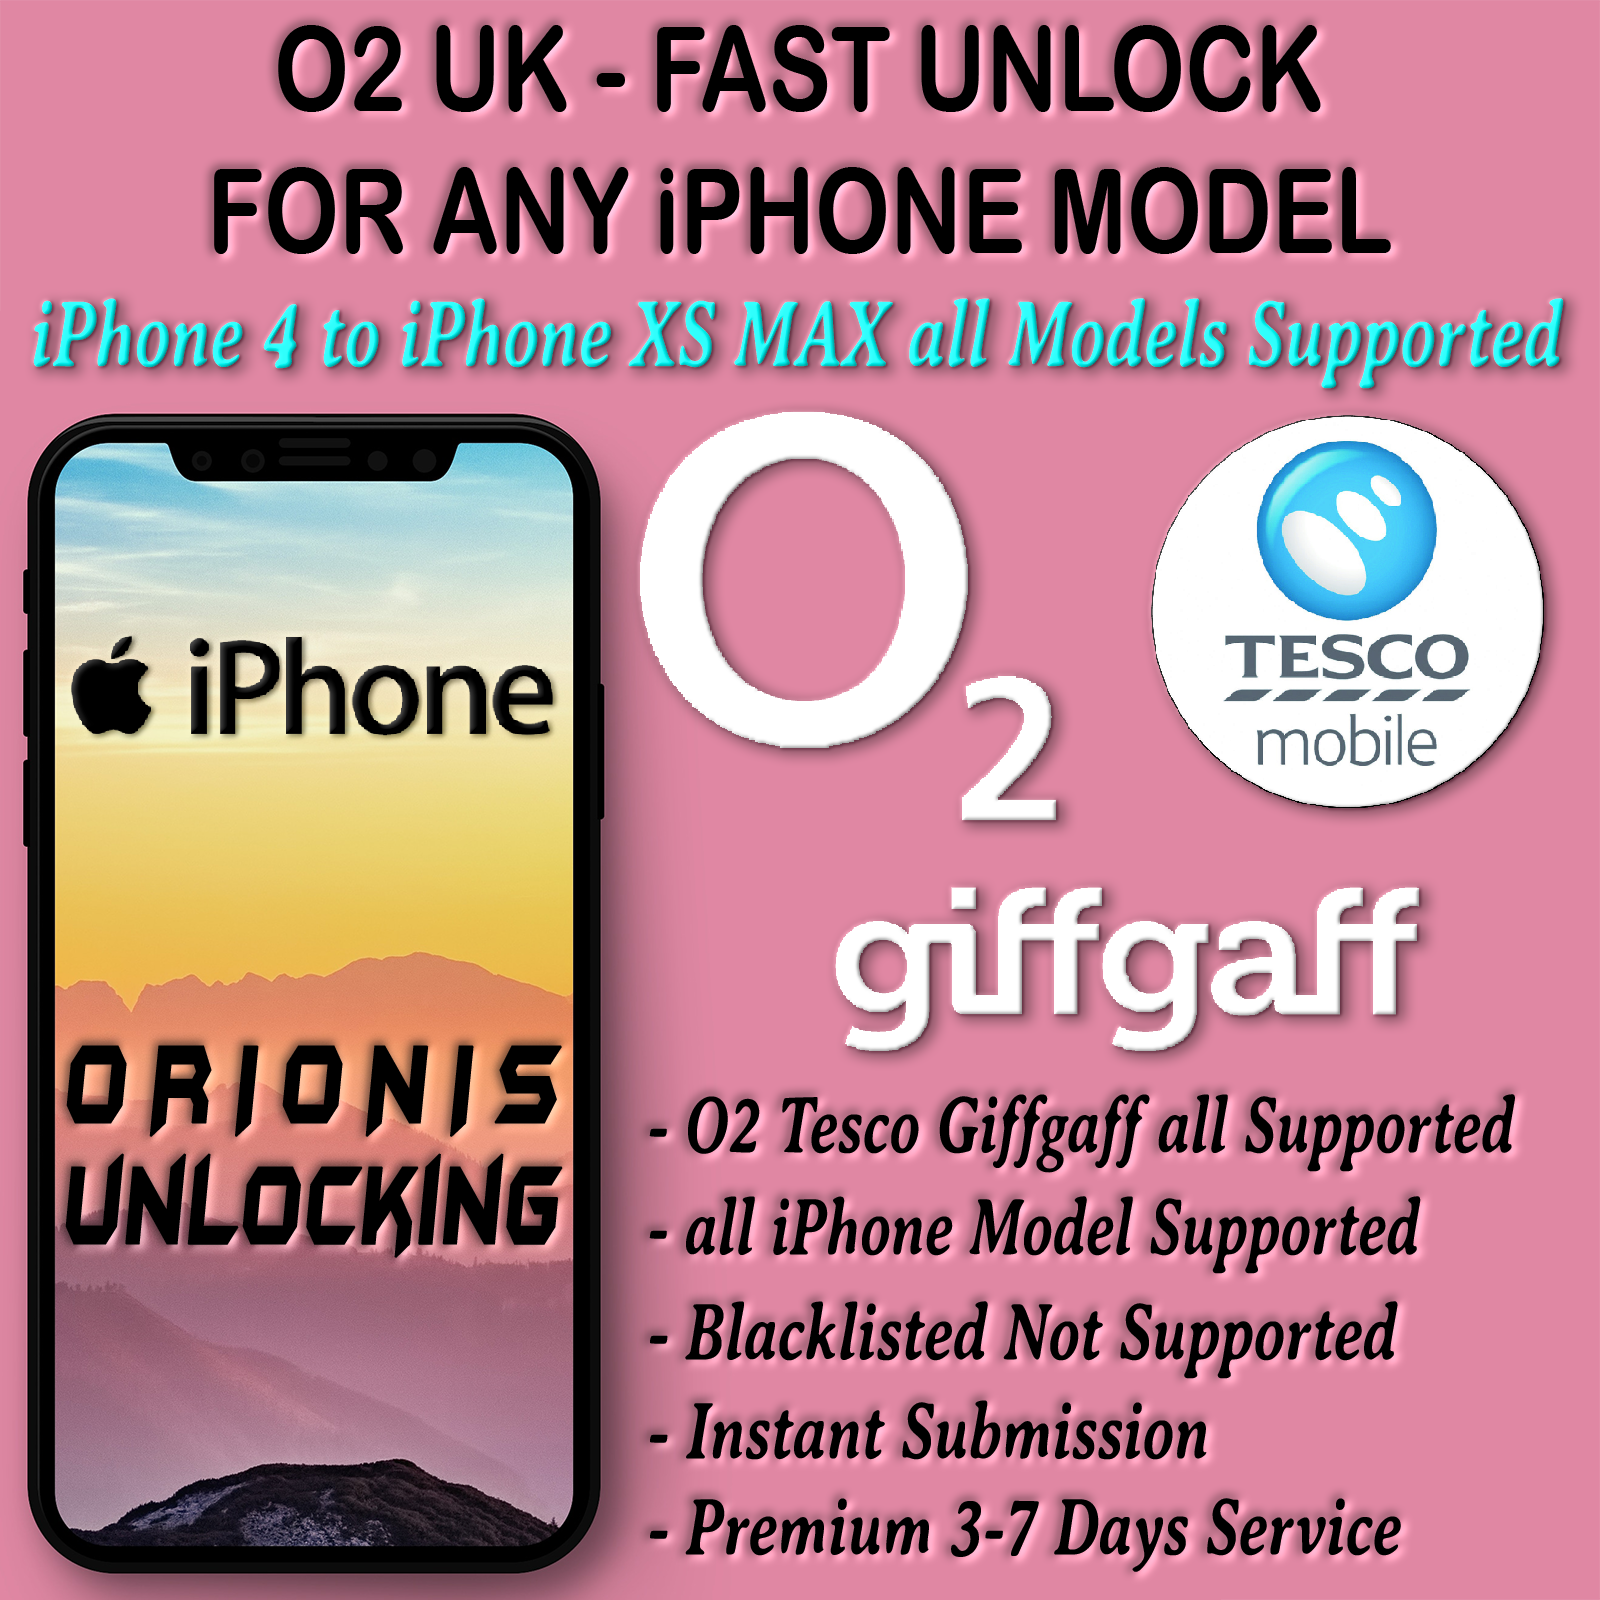 UK O2 Tesco GiffGaff iPhone (all iPhone Supported, 3-5 Days)